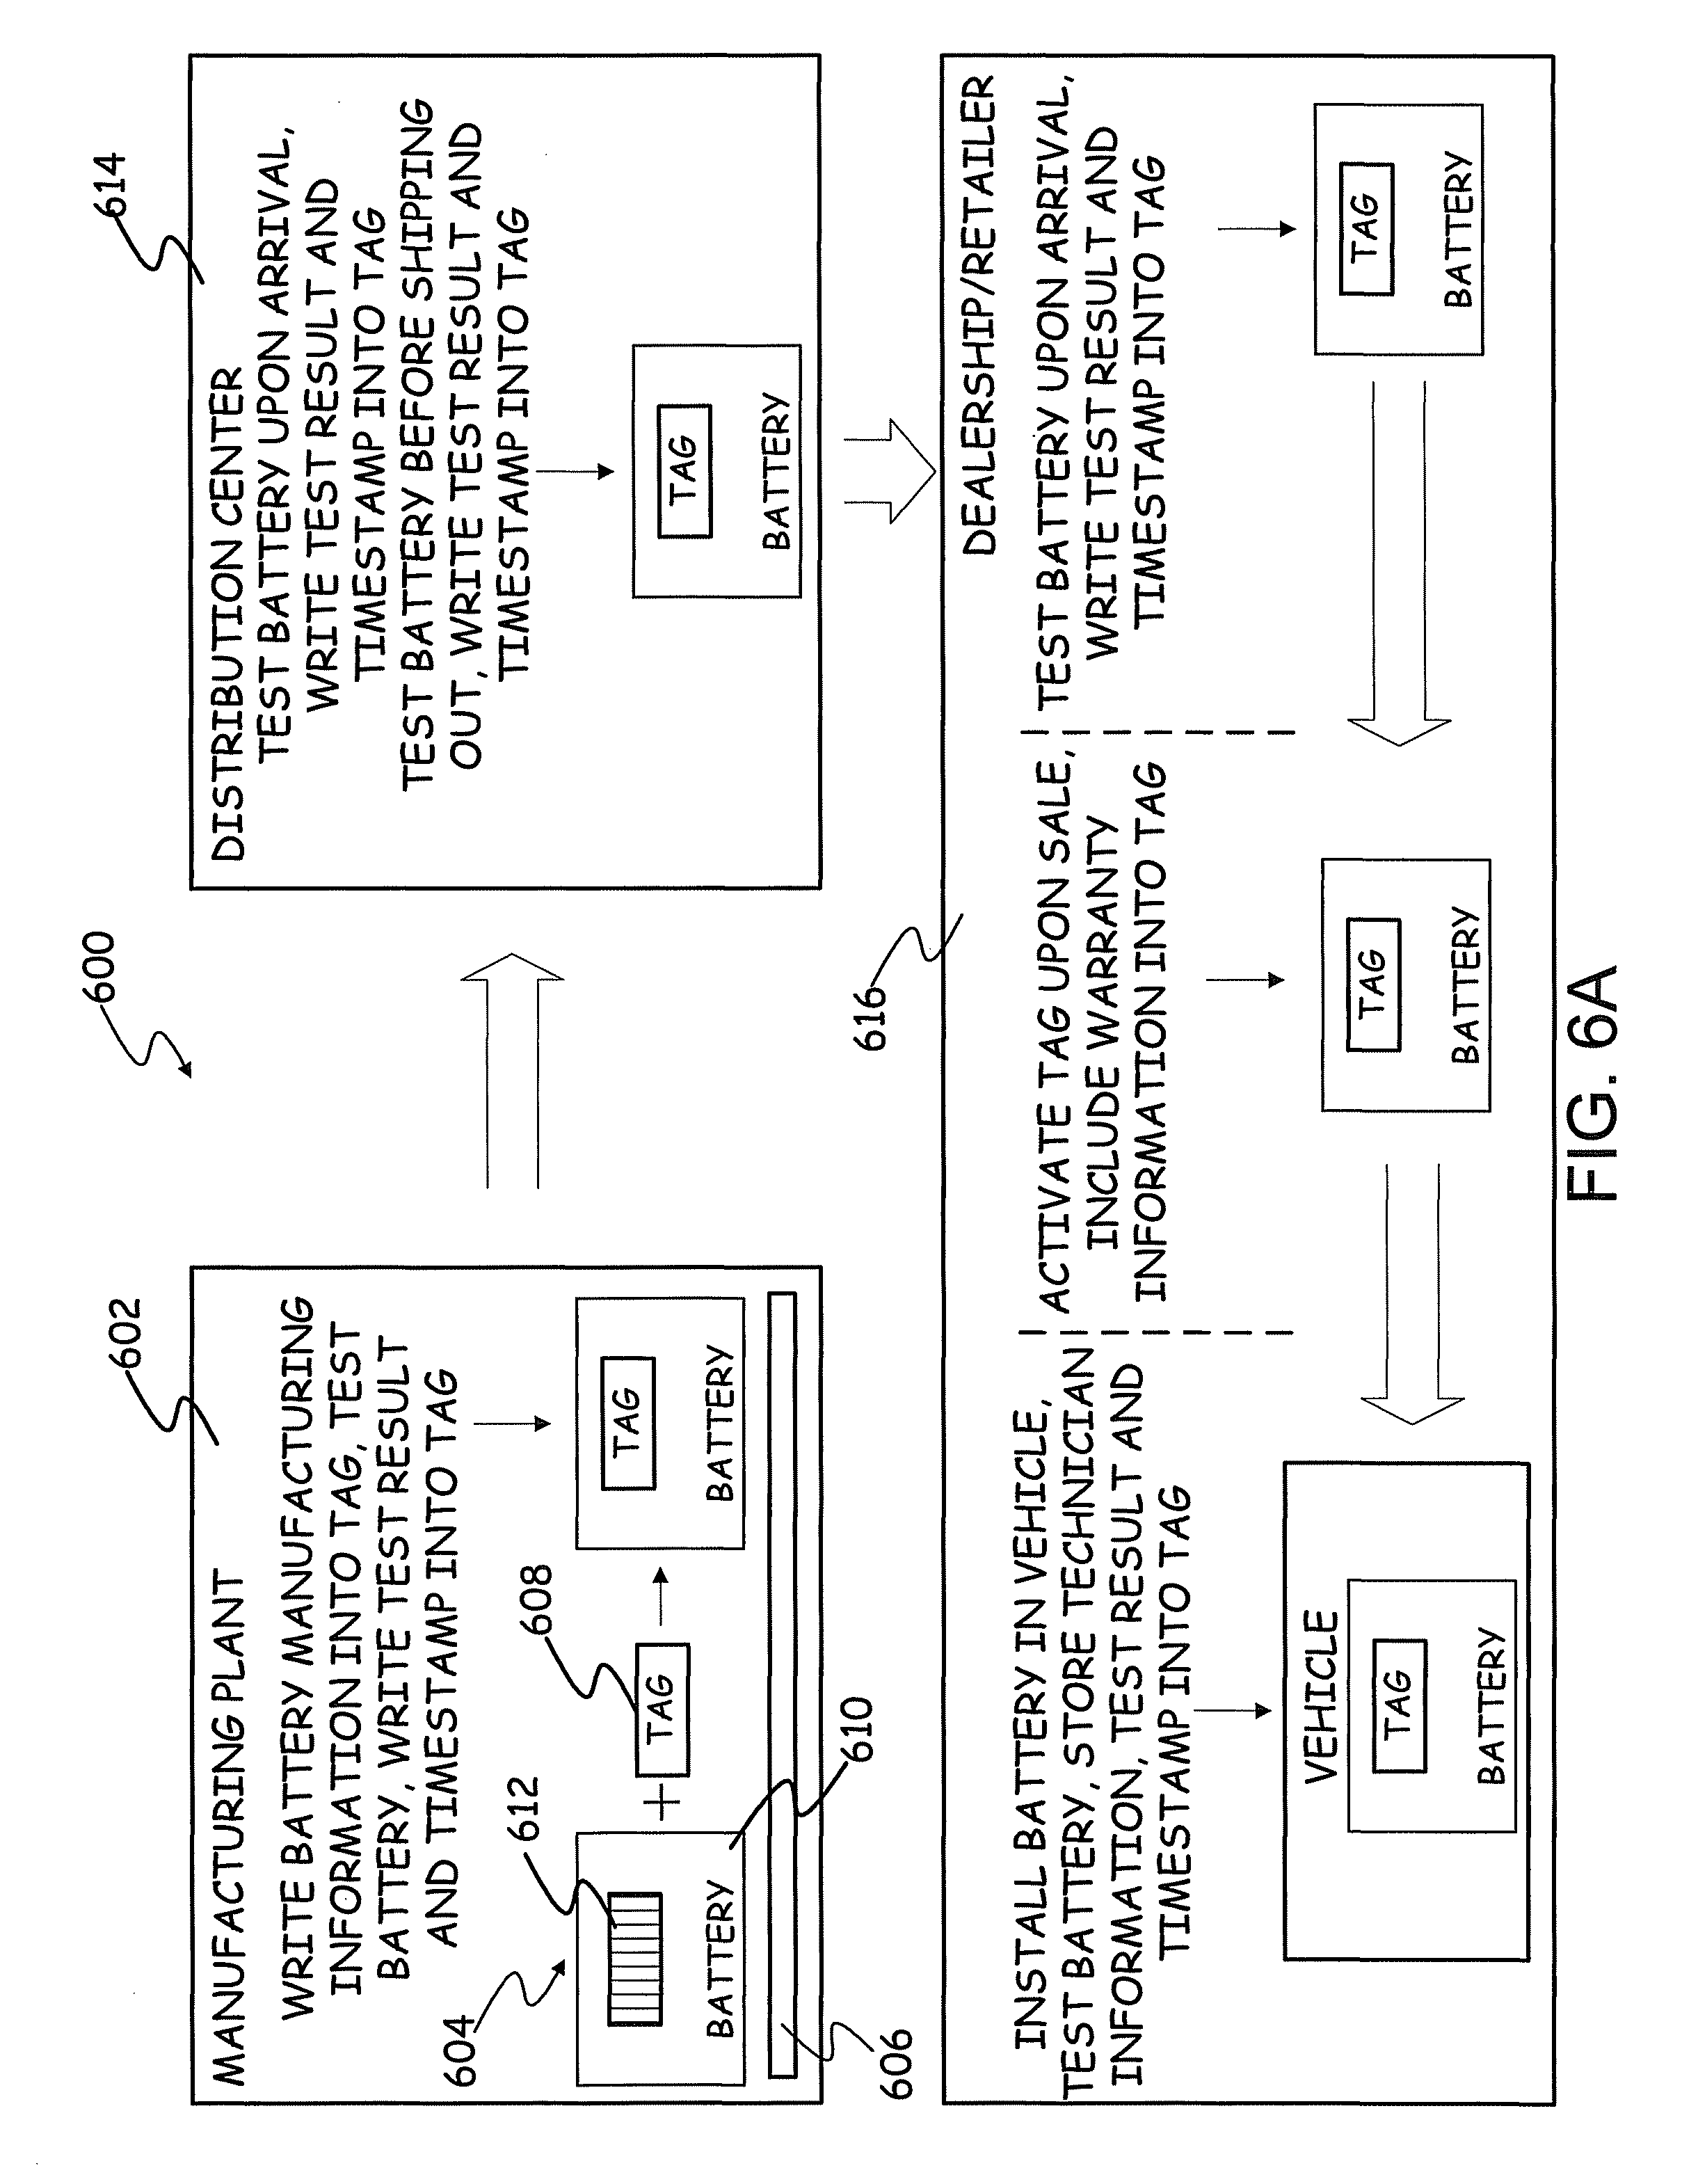 Patent Us 8344685 B2 Basic Tachometer Circuit Using An Ir Led Receiver Couple 0 Petitions